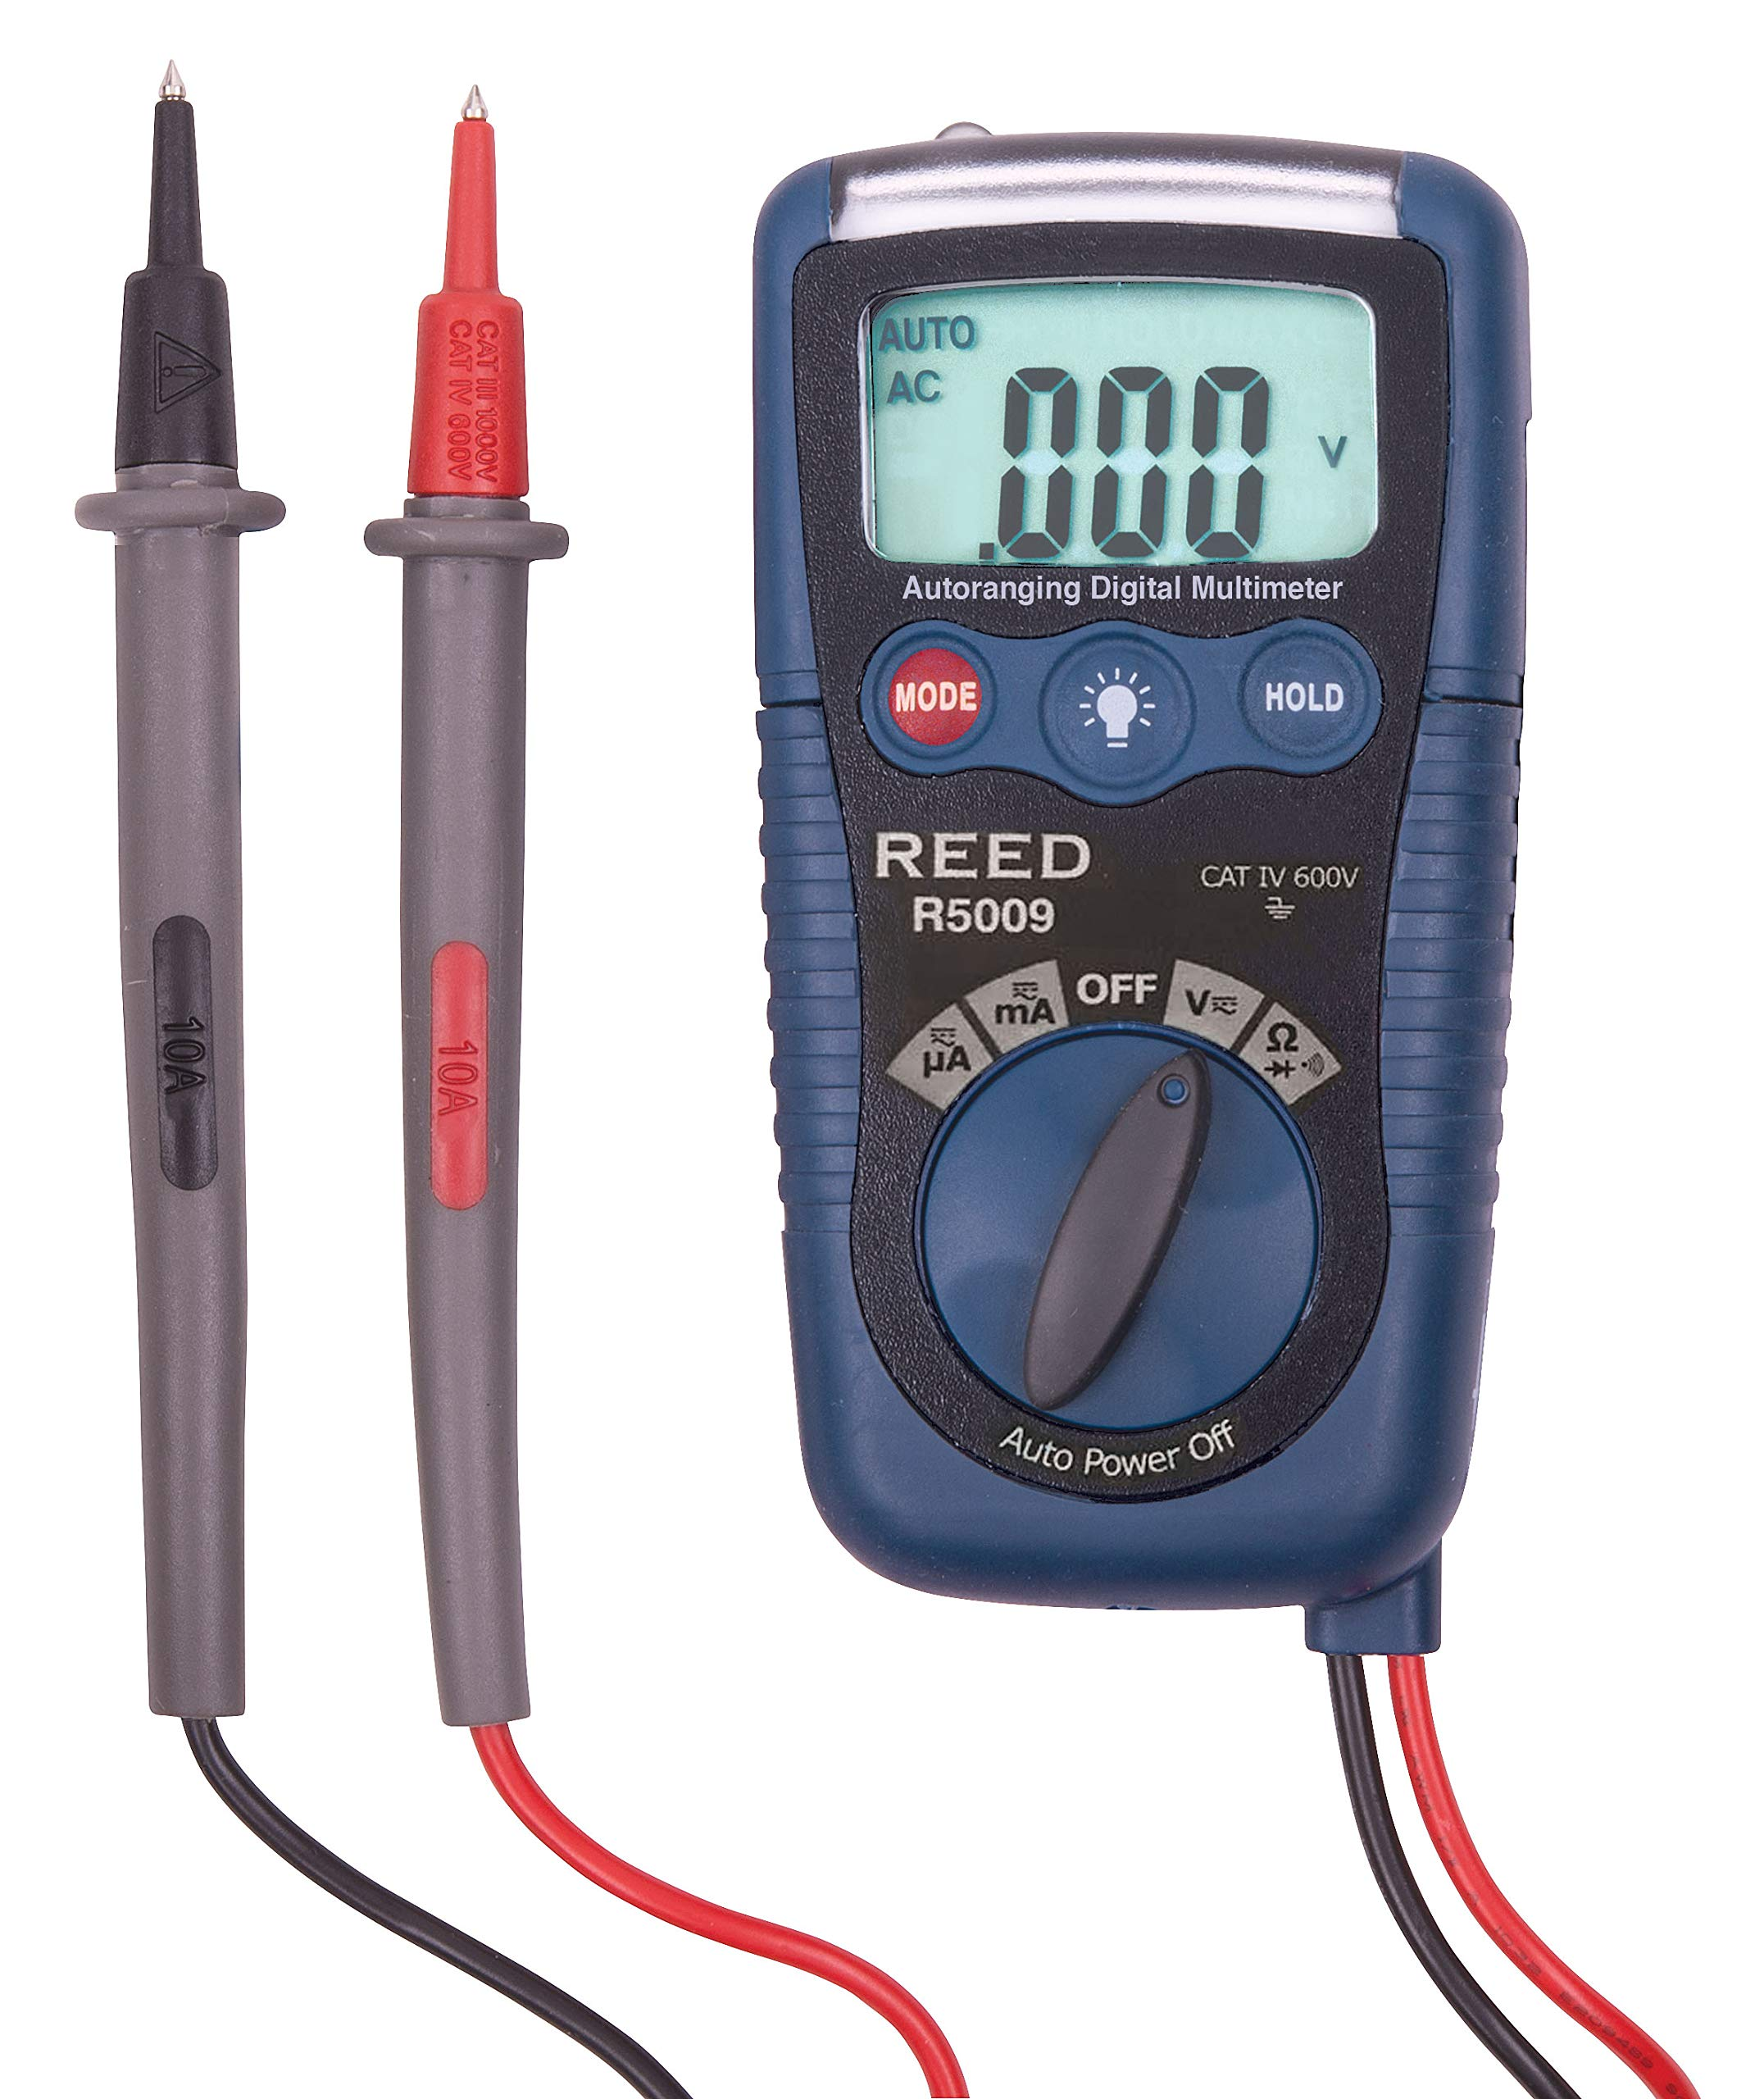 REED Instruments R5009 Pocket Multimeter with Non-Contact Voltage Detector and Flashlight, 3-in-1 by REED Instruments